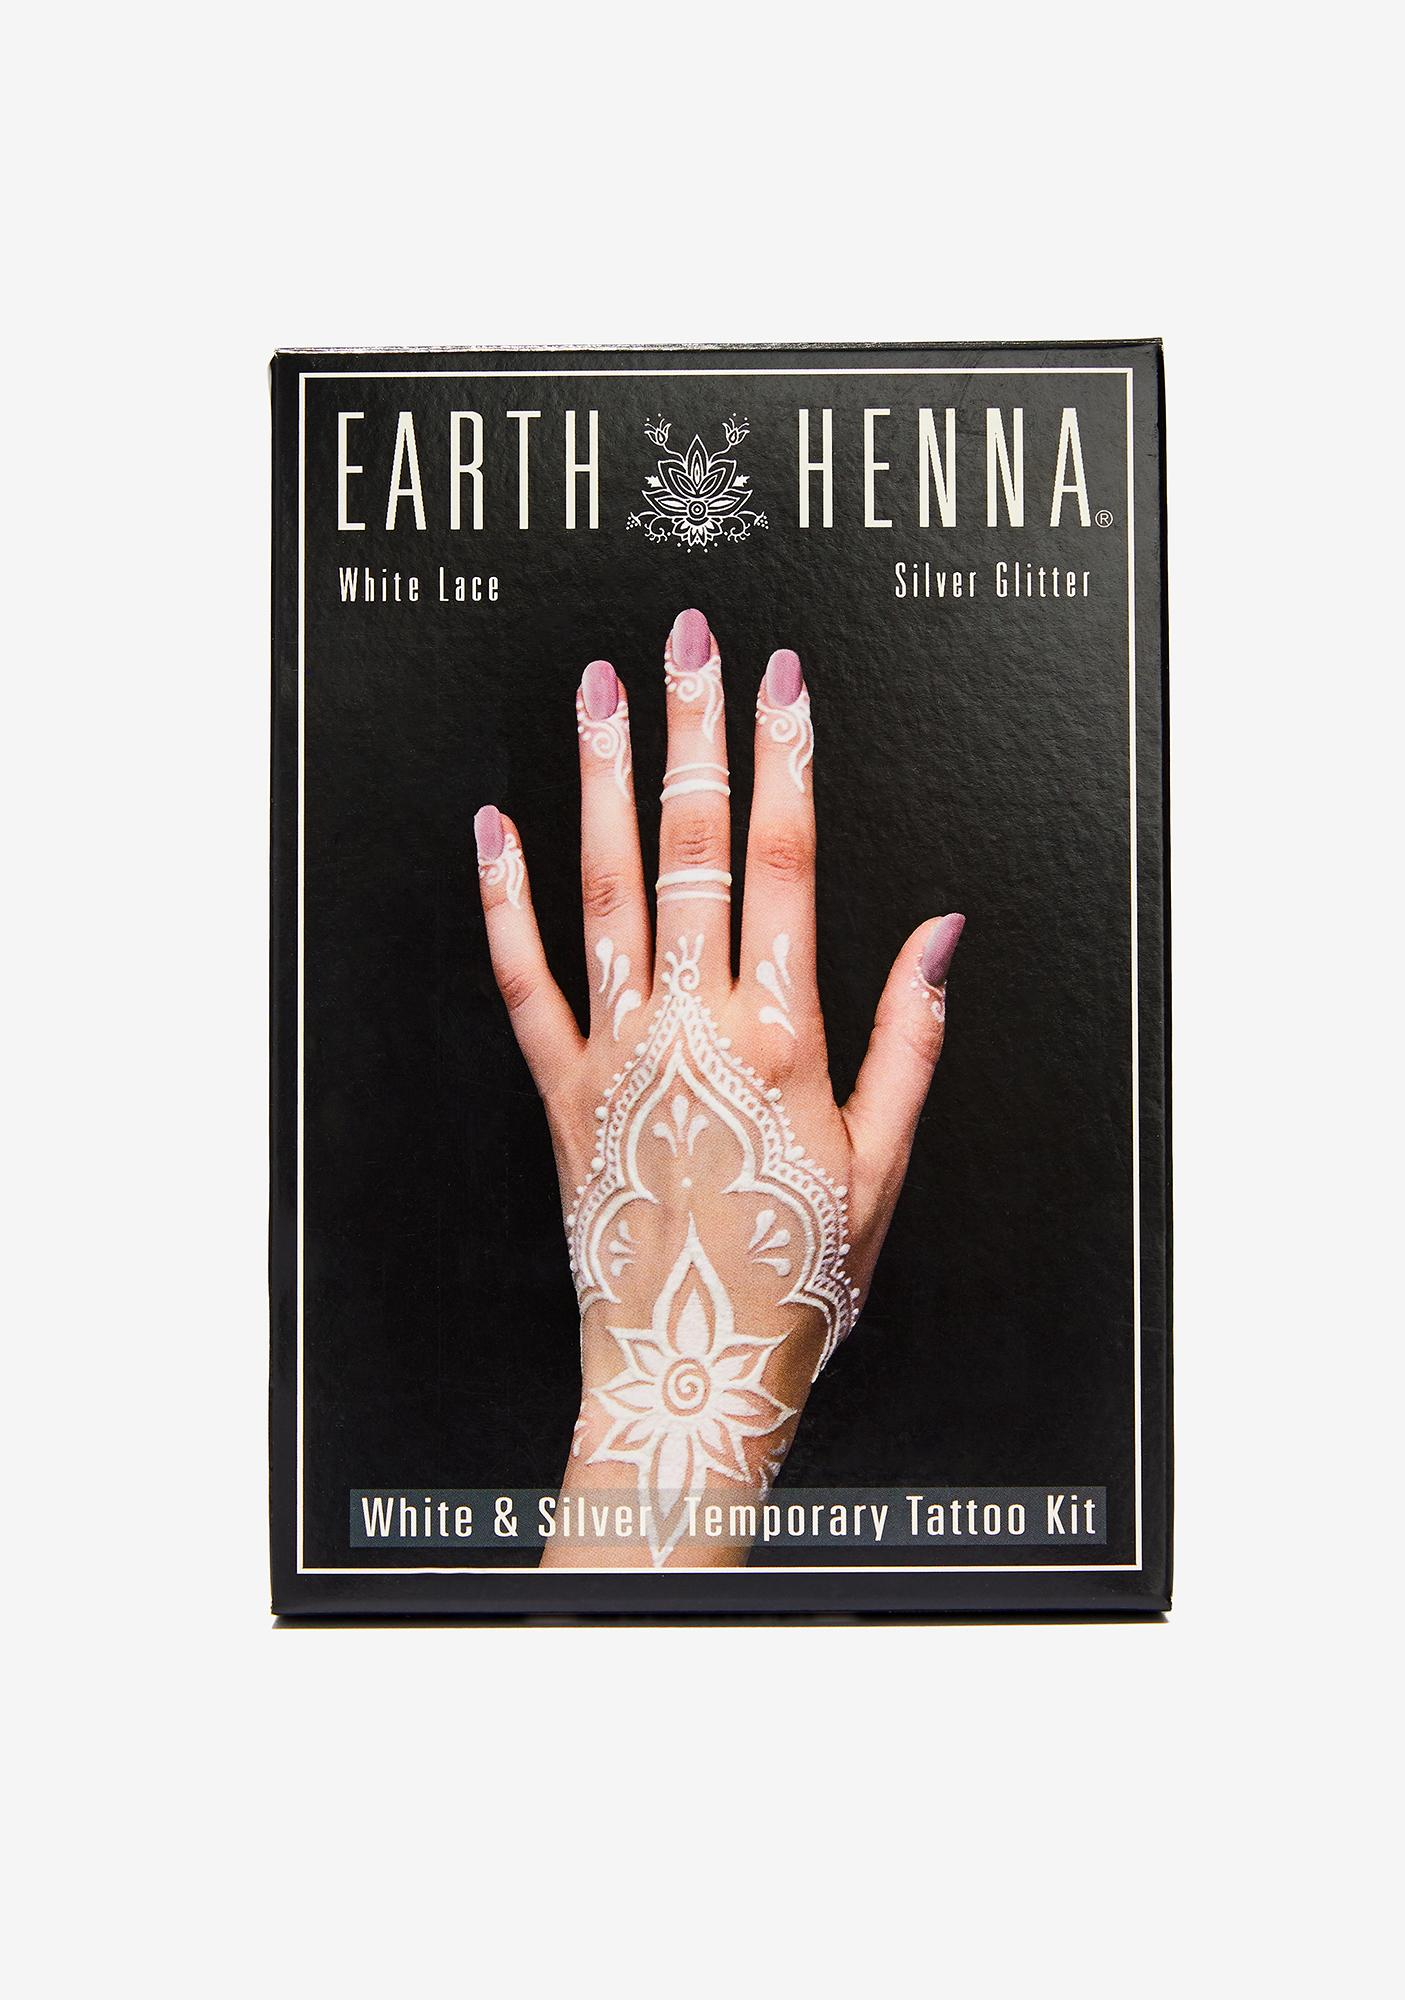 Earth Henna Earth Henna White Lace Tattoo Kit